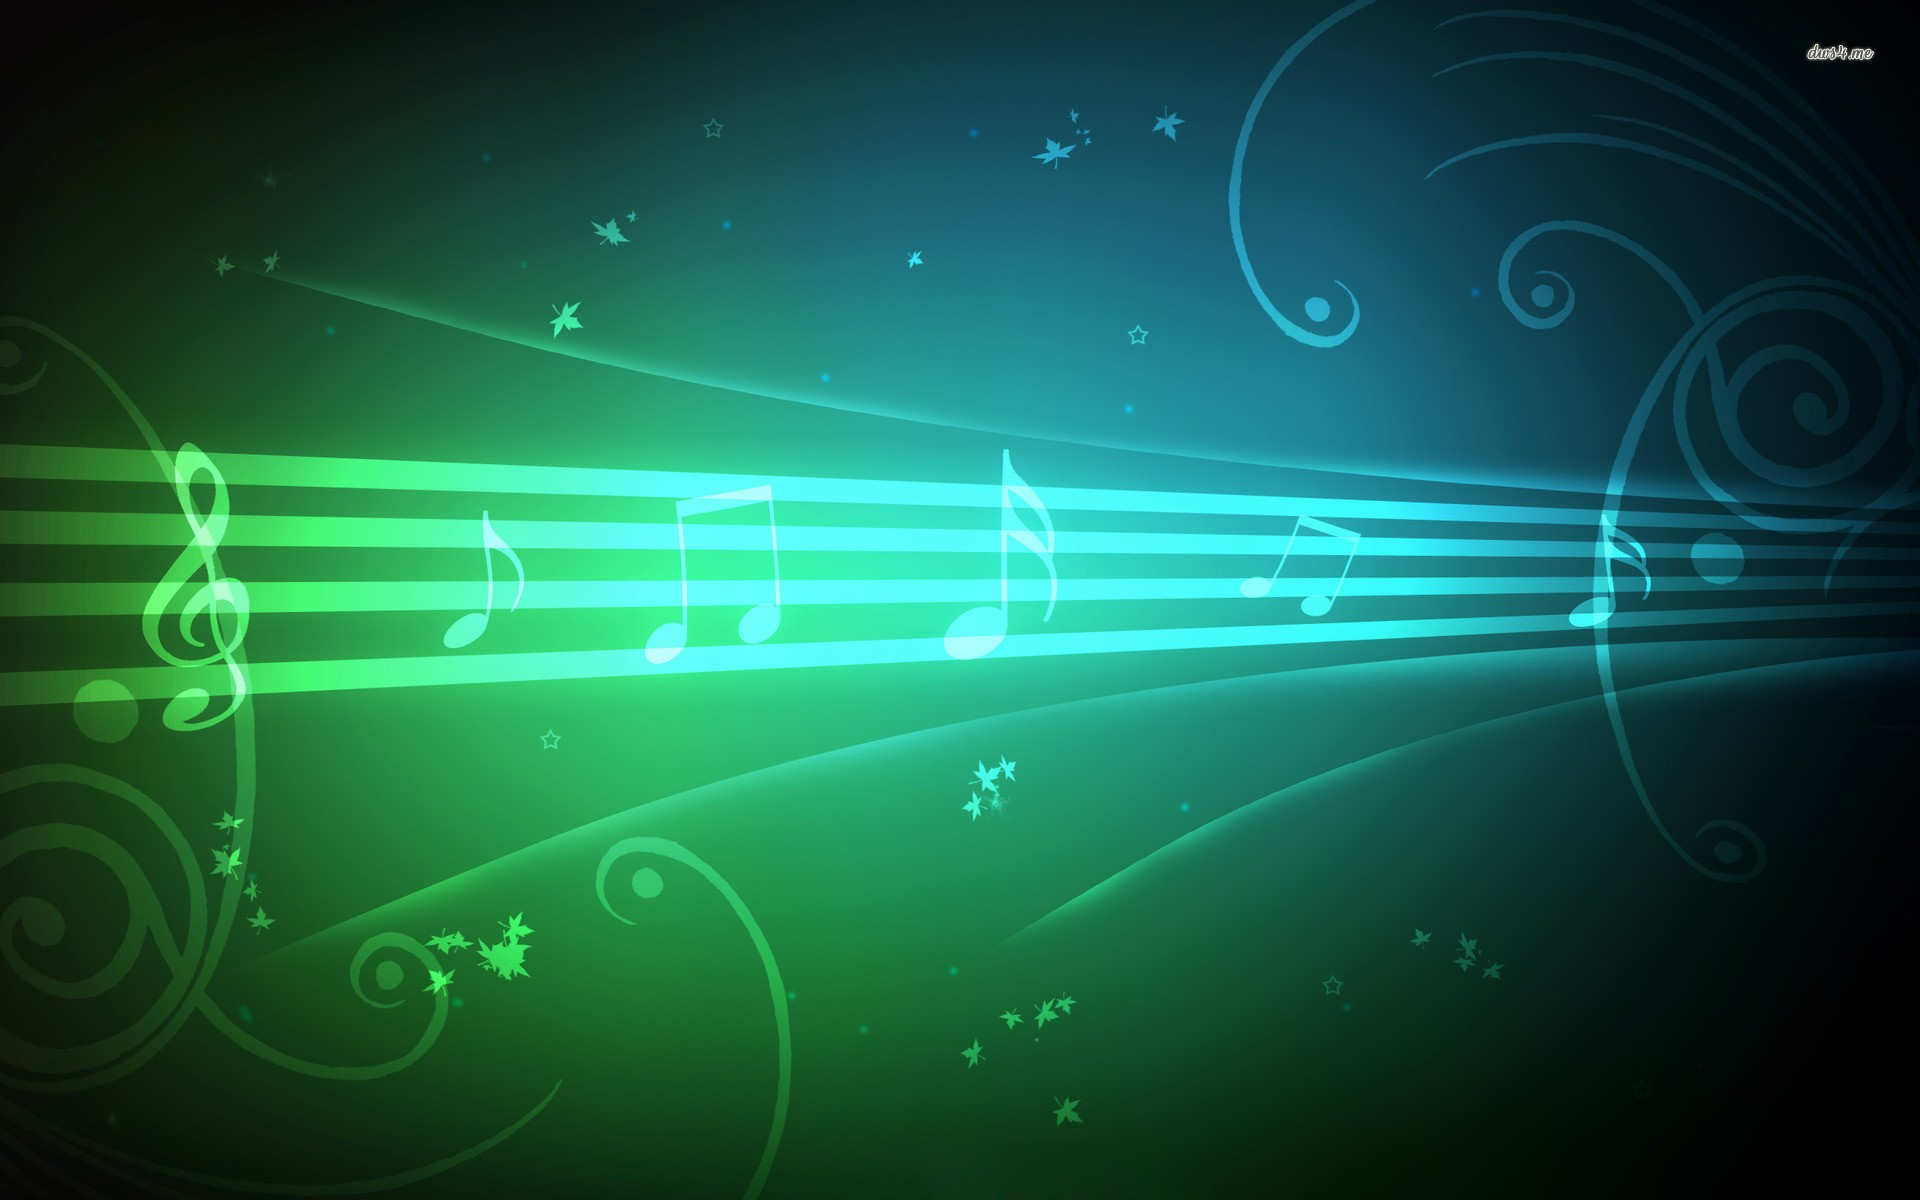 Background music Download free amazing High Resolution